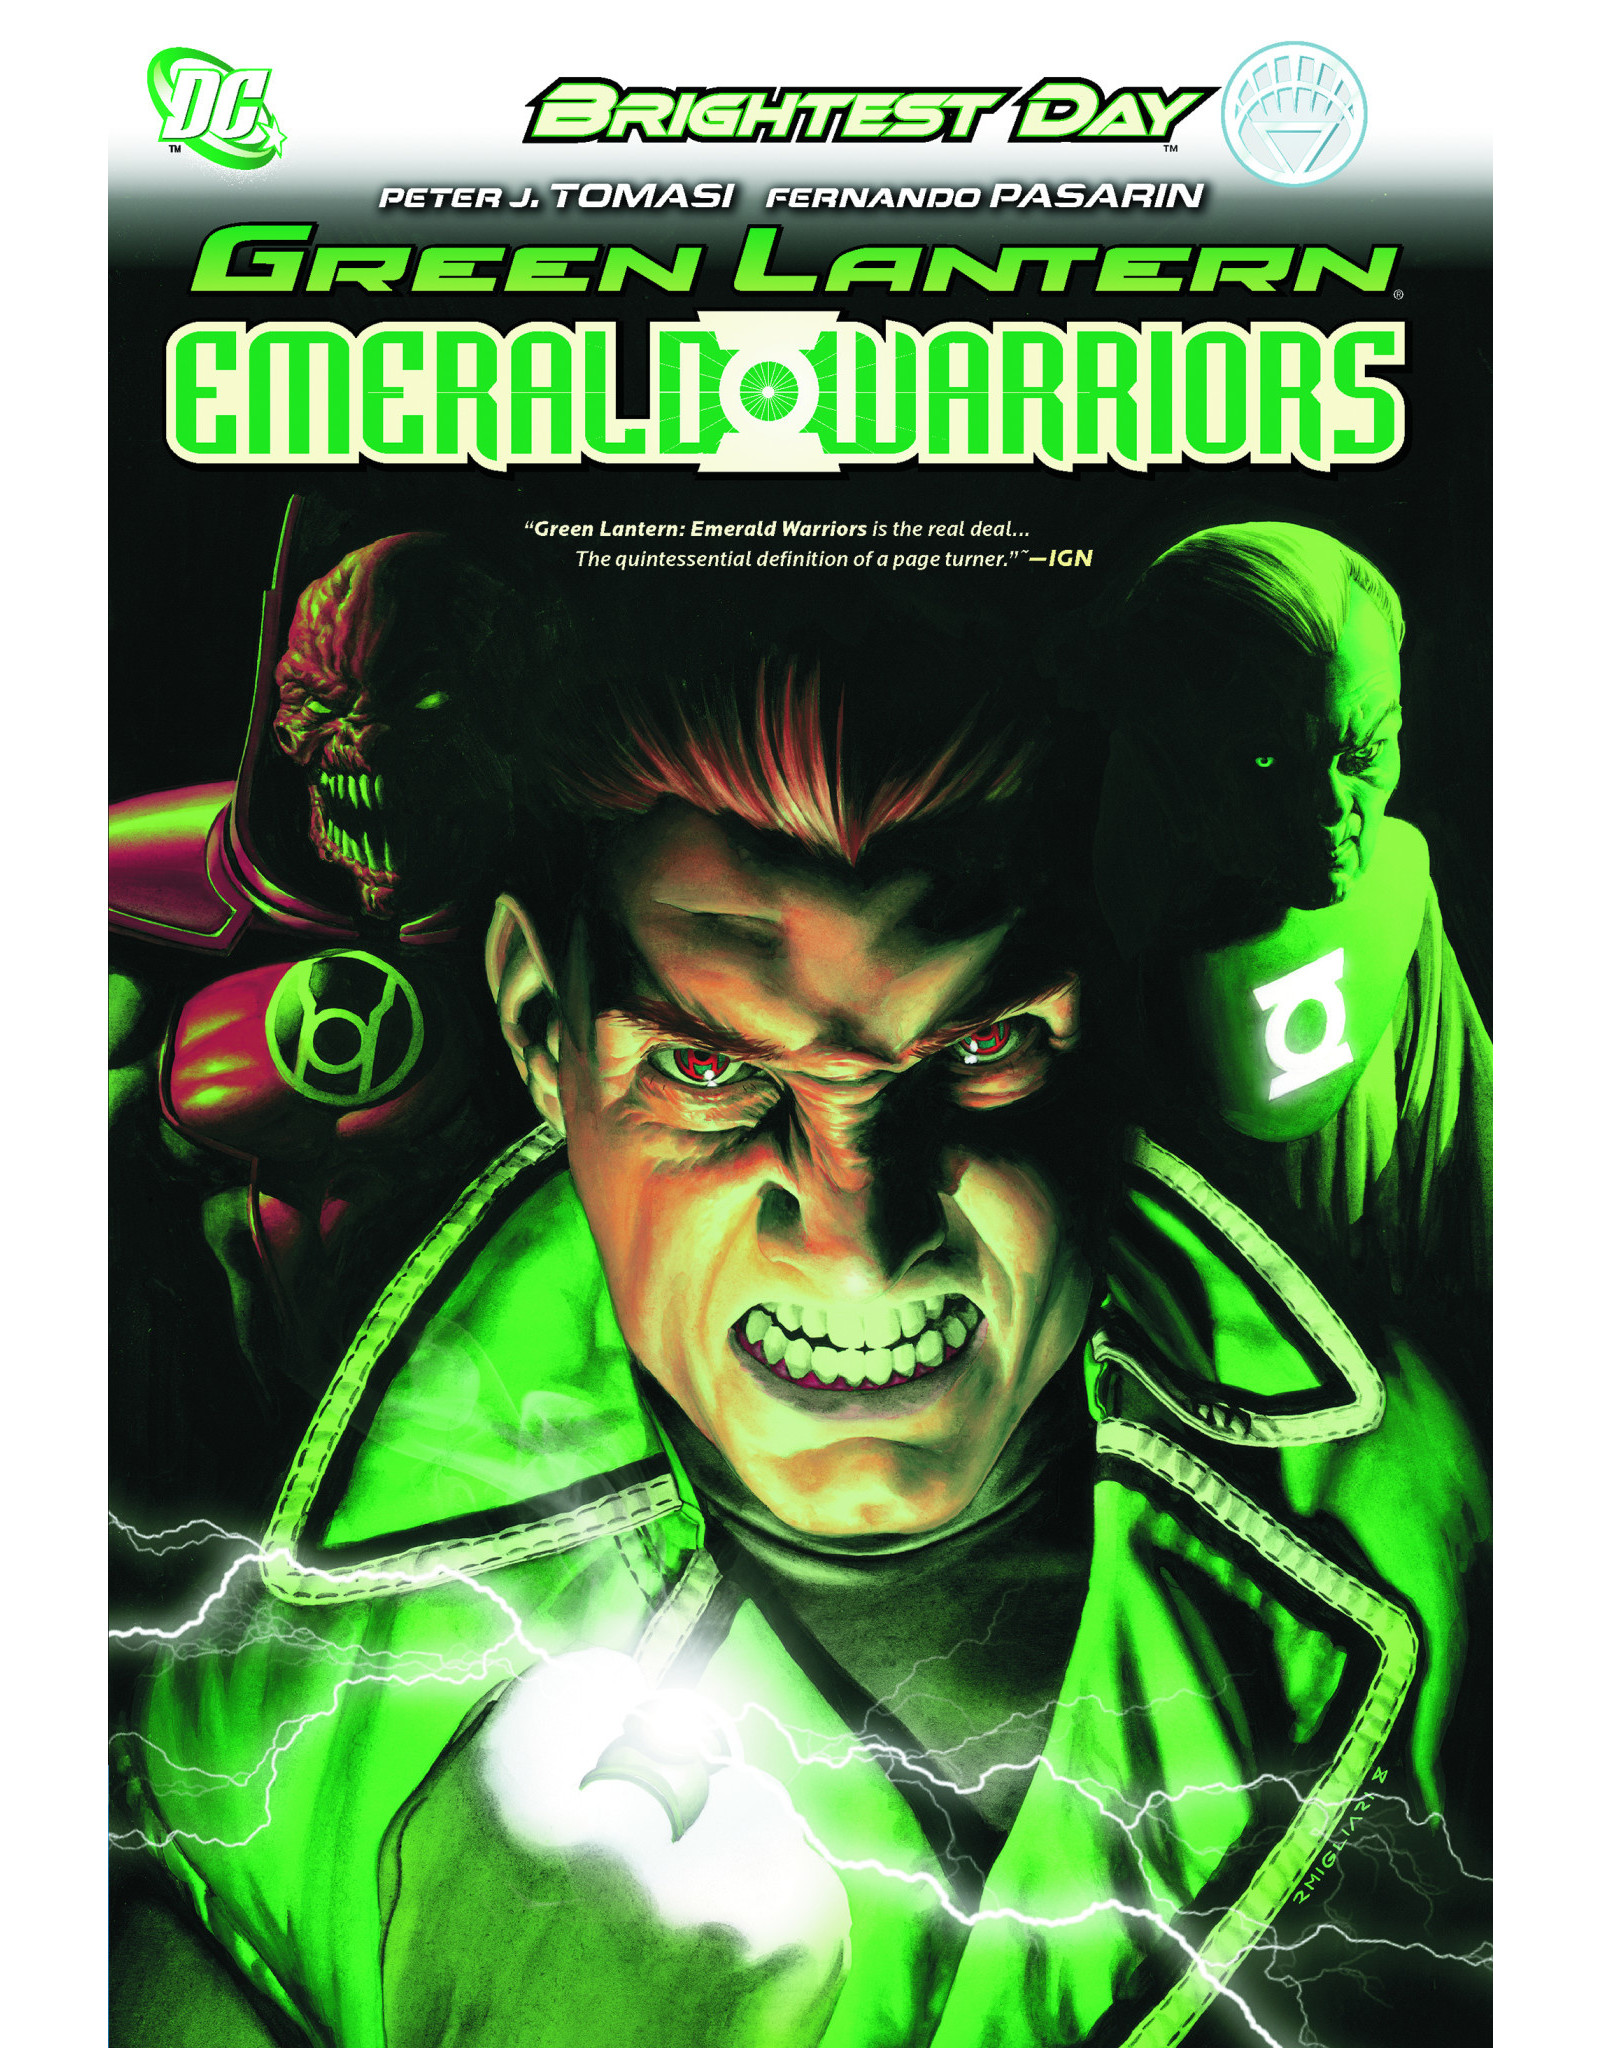 DC COMICS GREEN LANTERN EMERALD WARRIORS TP VOL 01